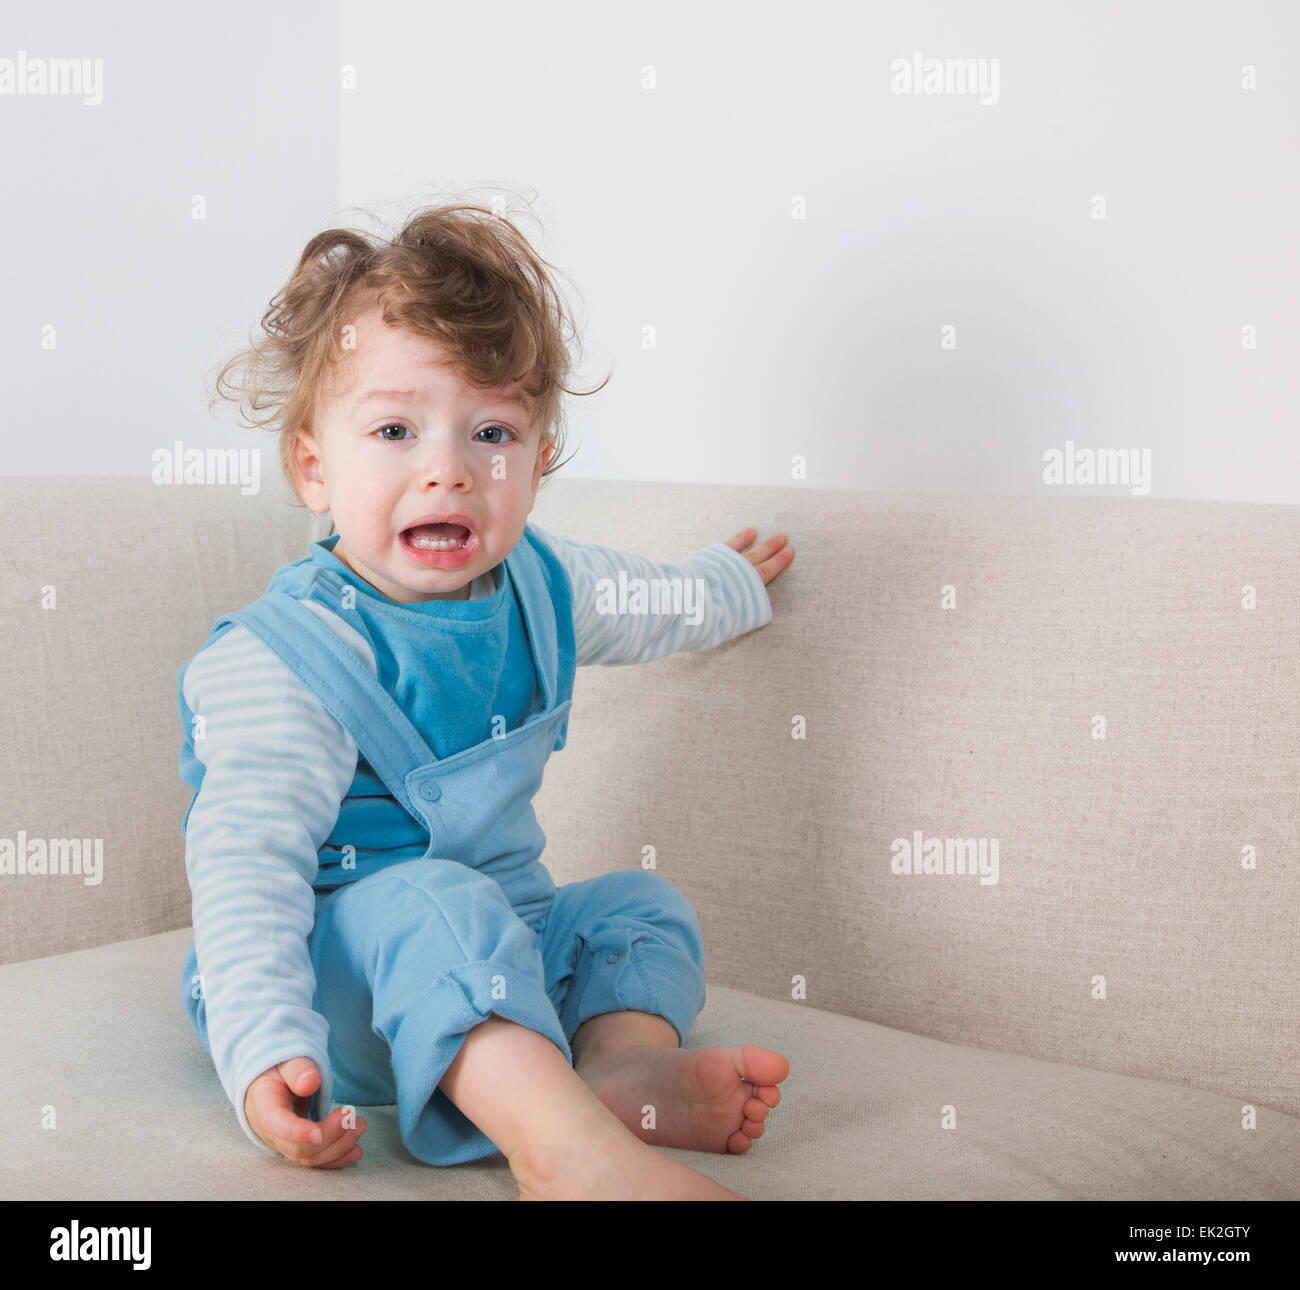 1 year old baby boy crying while sitting on the sofa stock photo